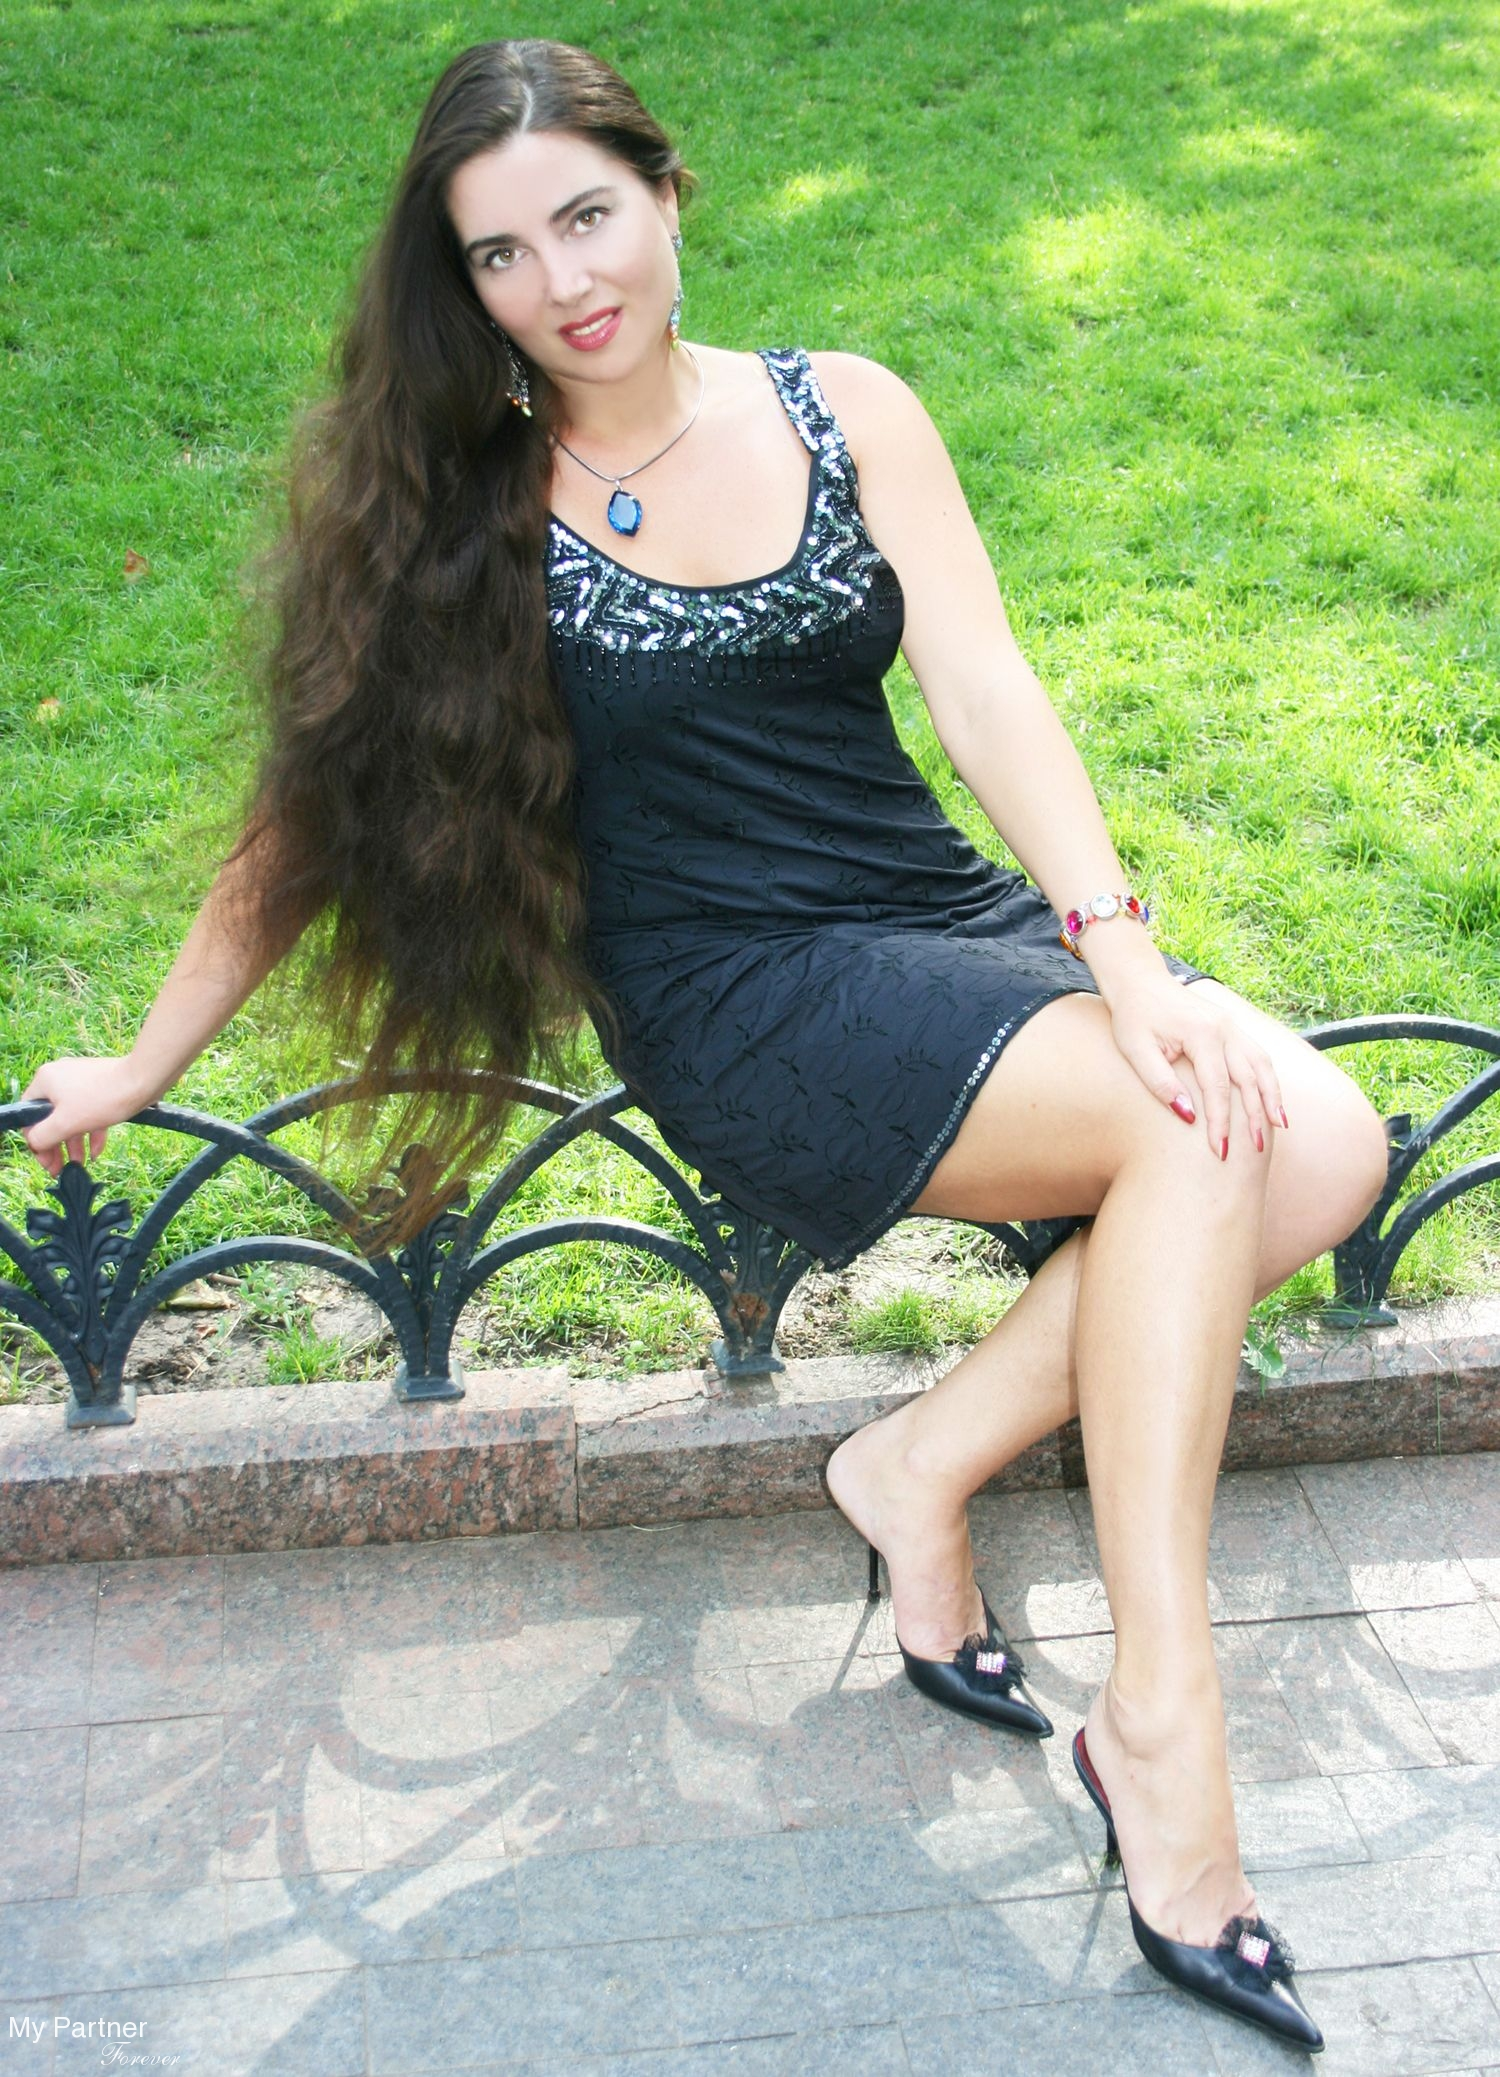 F dating ukraine